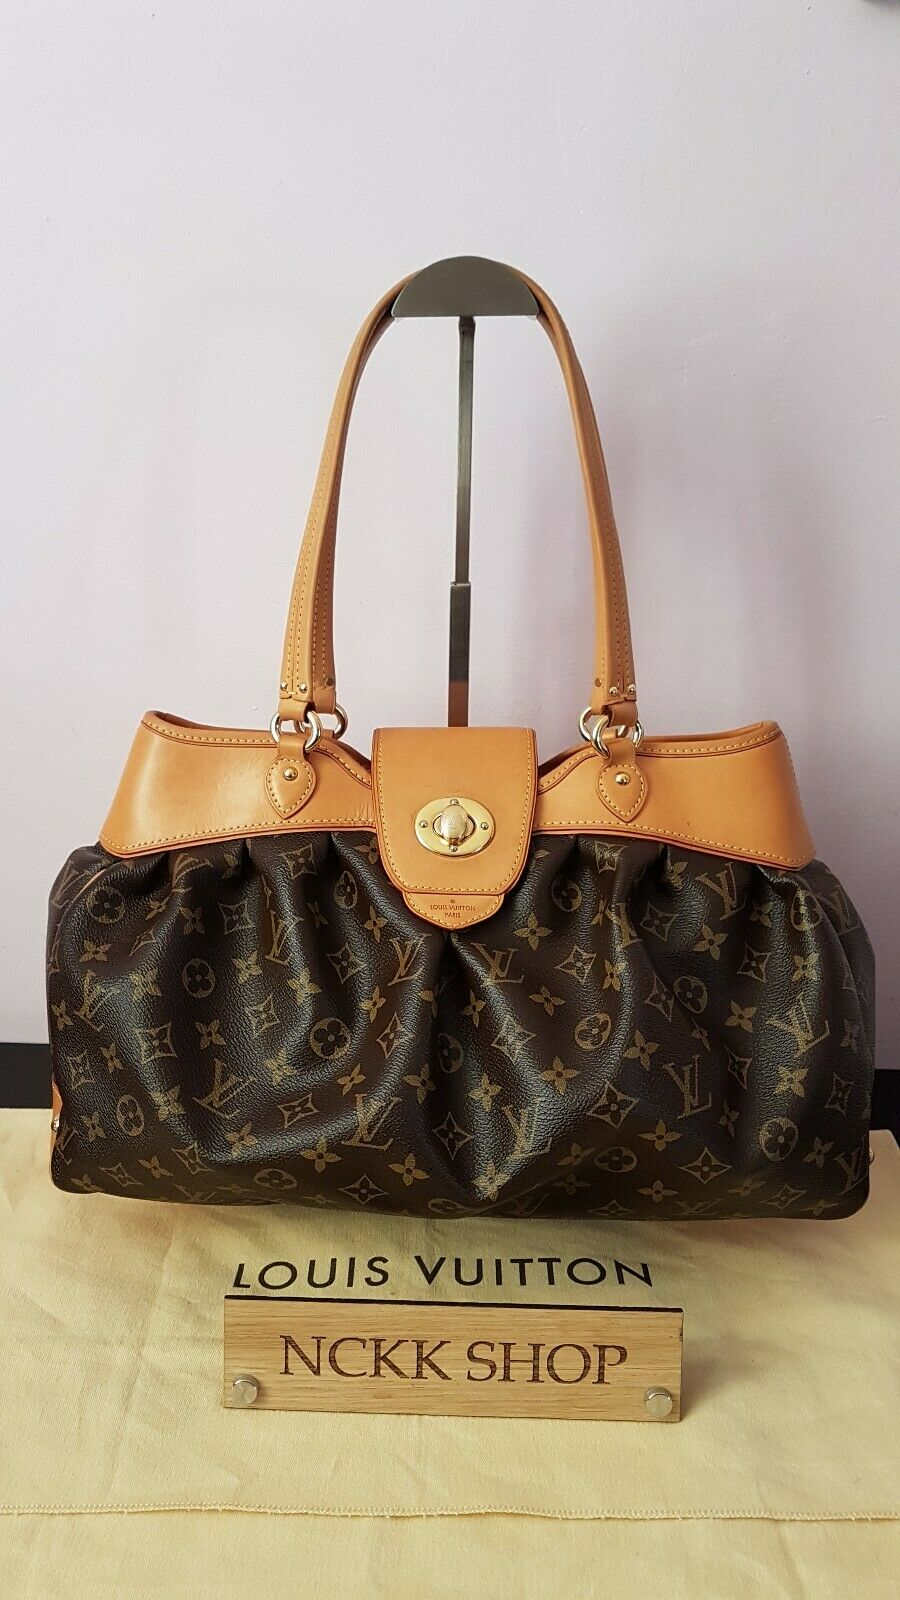 100% Authentic Louis Vuitton boesi MM Monogram Canvas Umhängetasche m45714 - 979.11,Kaufpreis 979,11,datum 01.07.2020 22:12:38,Website quoka.de